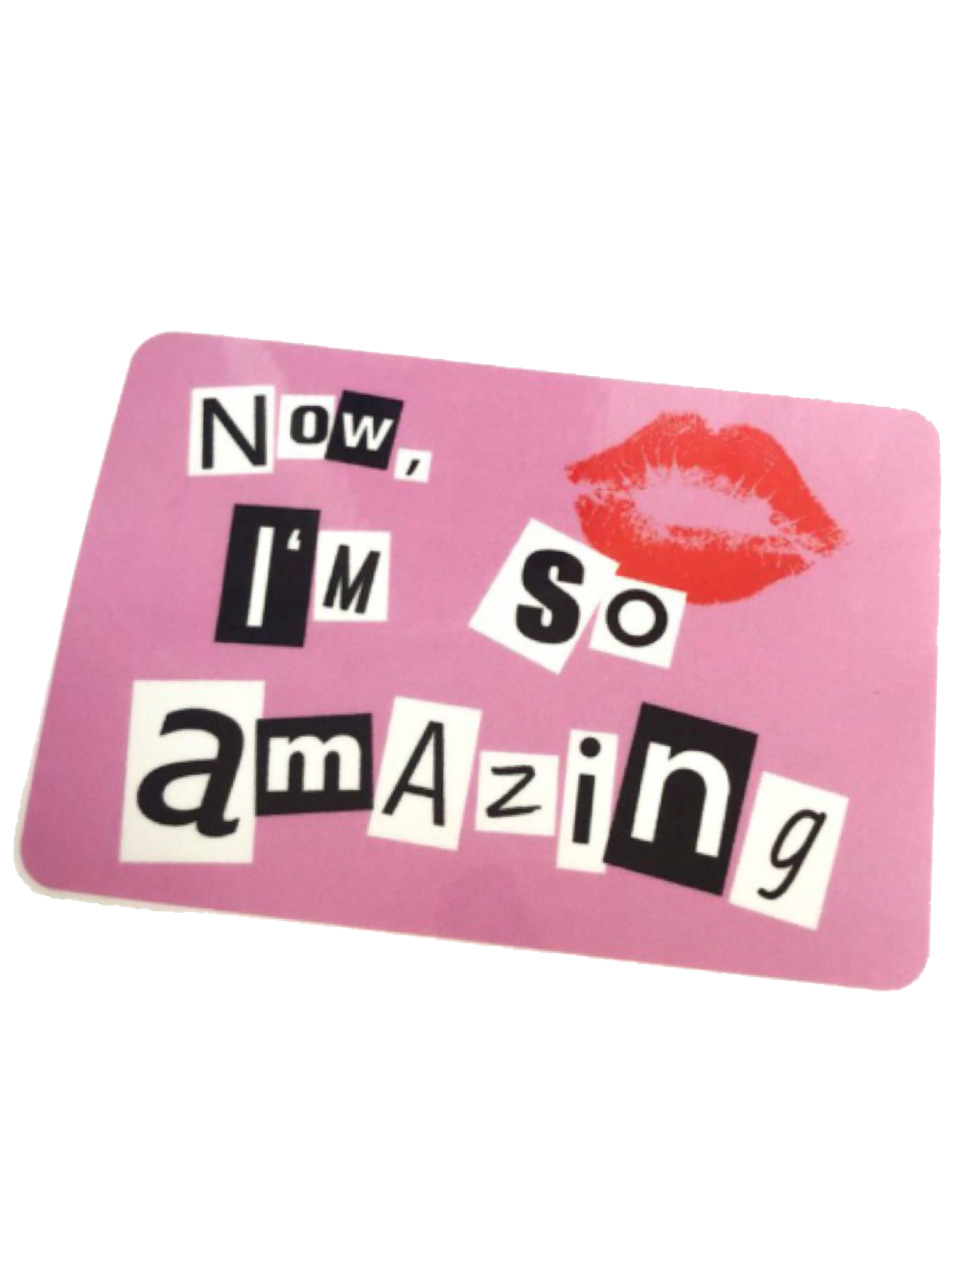 #thankunext #ari #sticker #overlay #pinkoverlay #cute #ariana #grande #arianagrandesticker #aesthetic #love #queen #thankyounext #words #text my sticker ! give creds if used ! #freetoedit